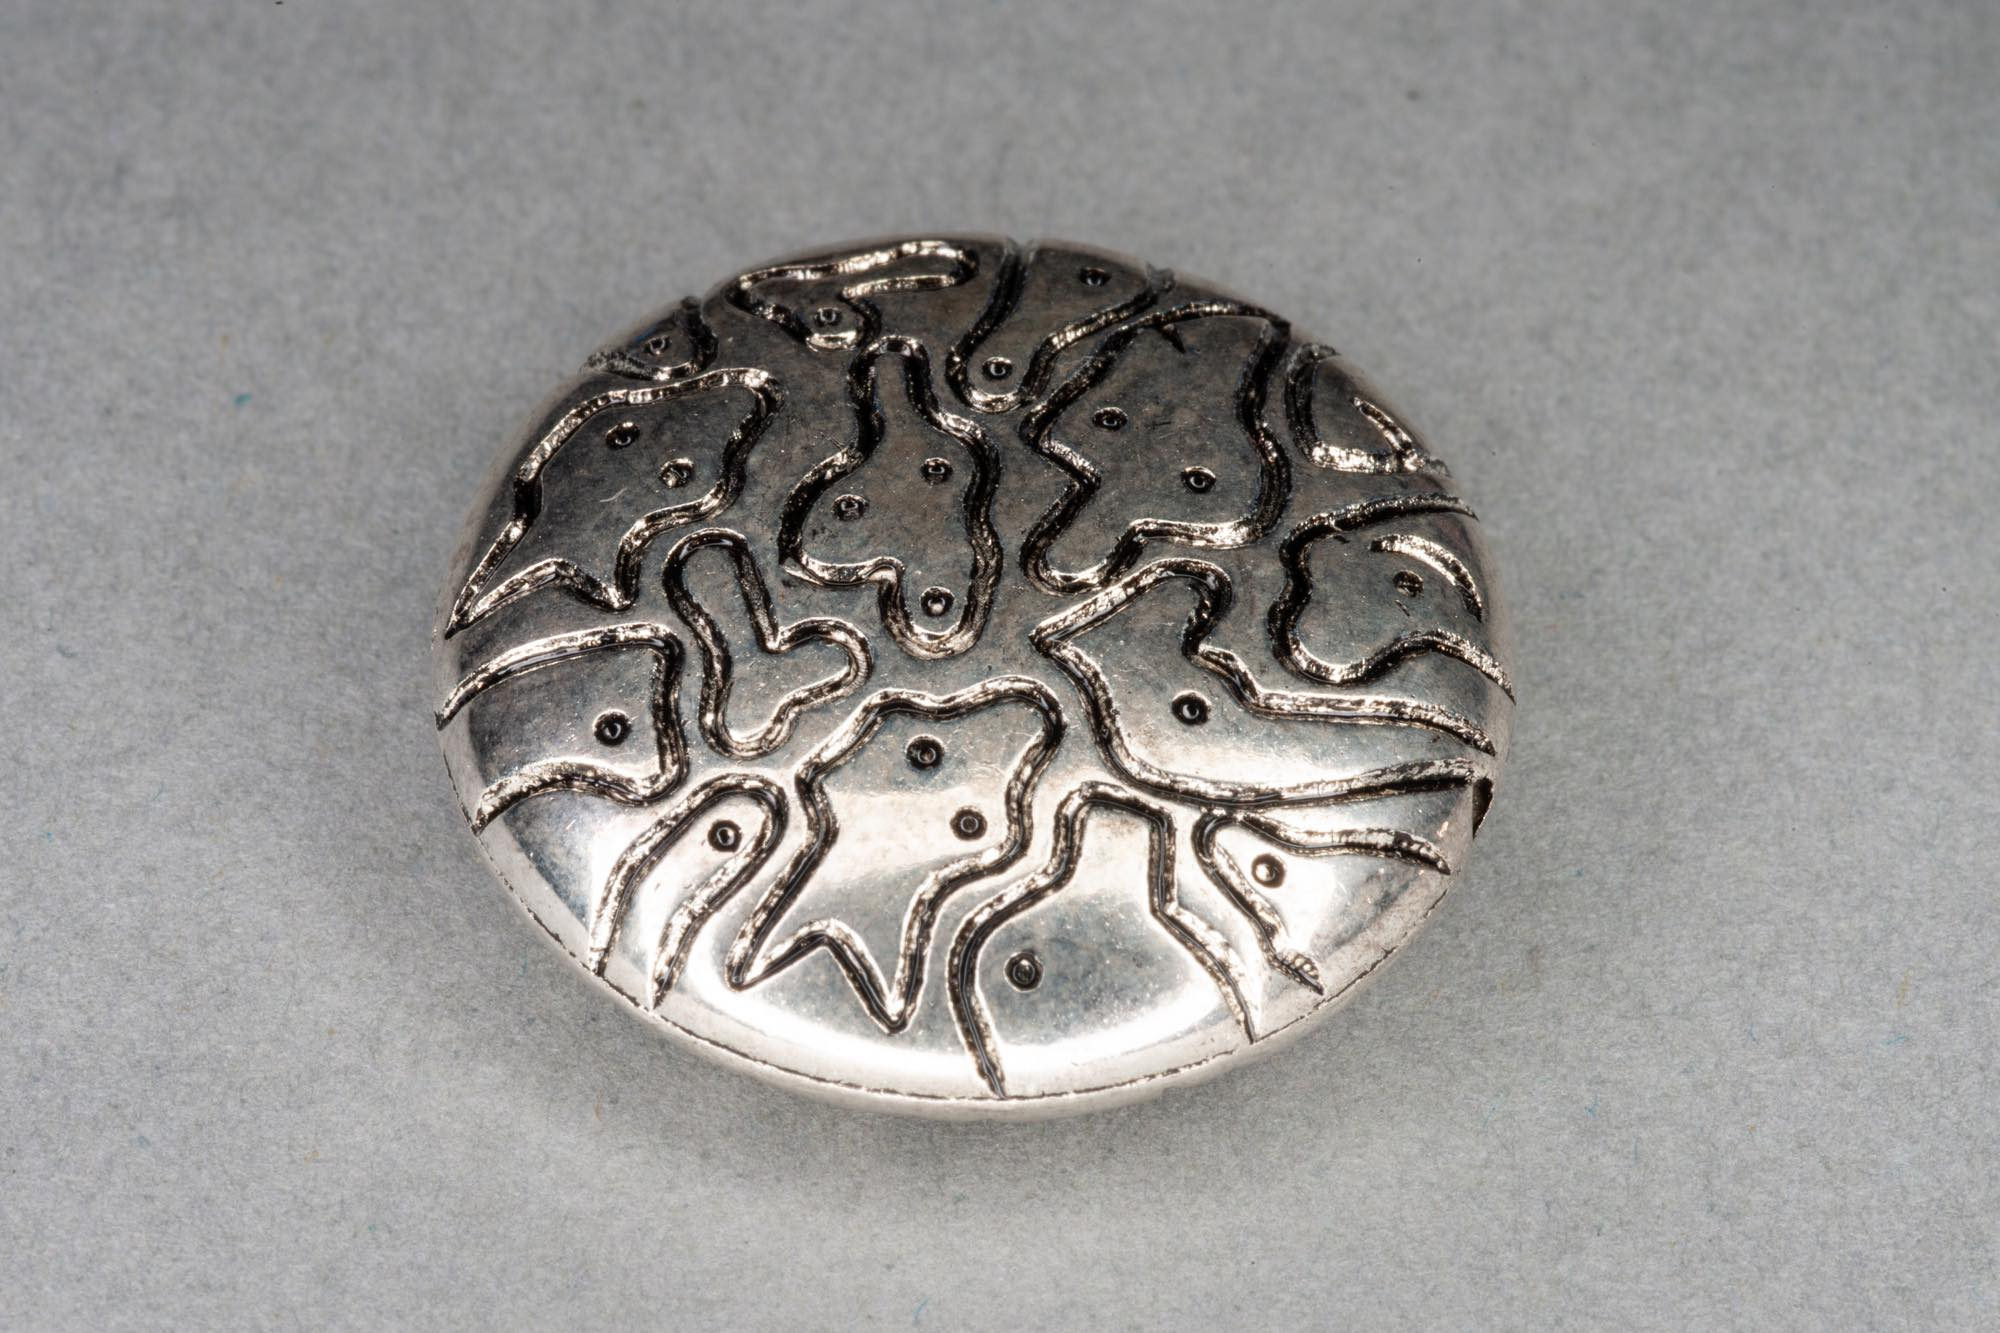 Silver Plated Acrylic Patterned Flat Bead, 25x7mm, 0.8mm hole